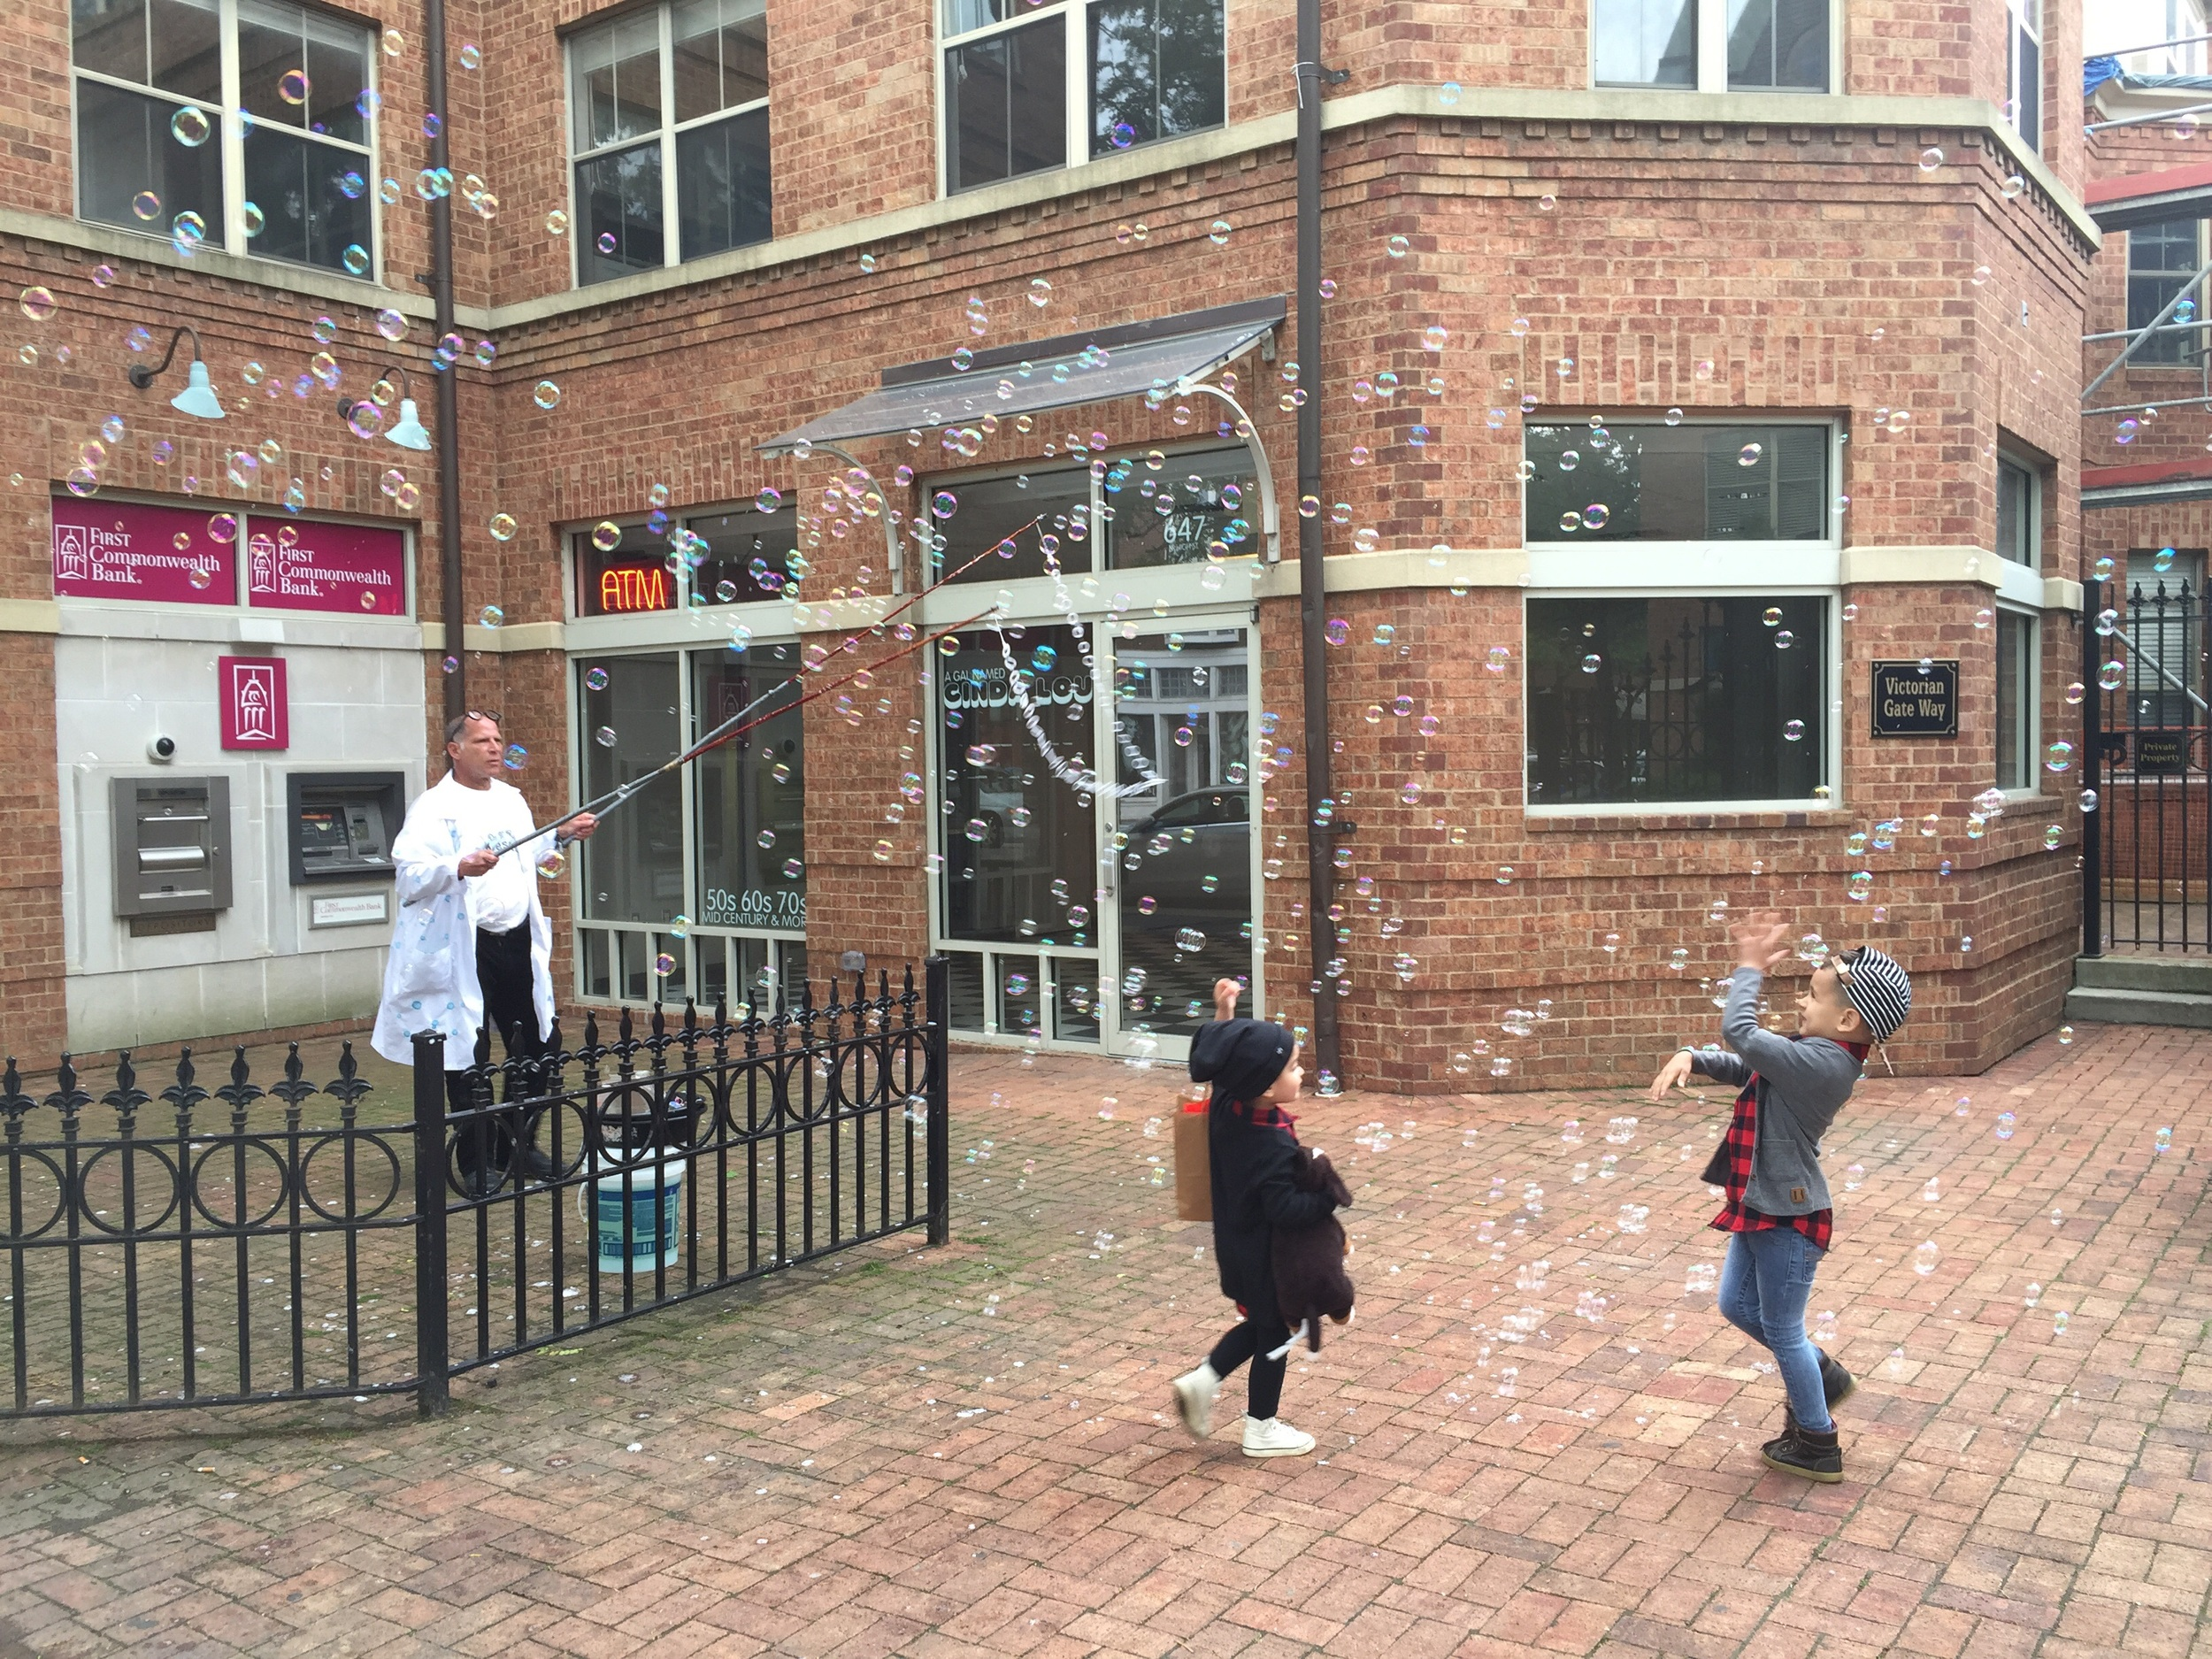 Post shopping bubble fun with Dr. U R Awesome!!! He holds two Guiness World Records for his giant bubbles. Check him out  here